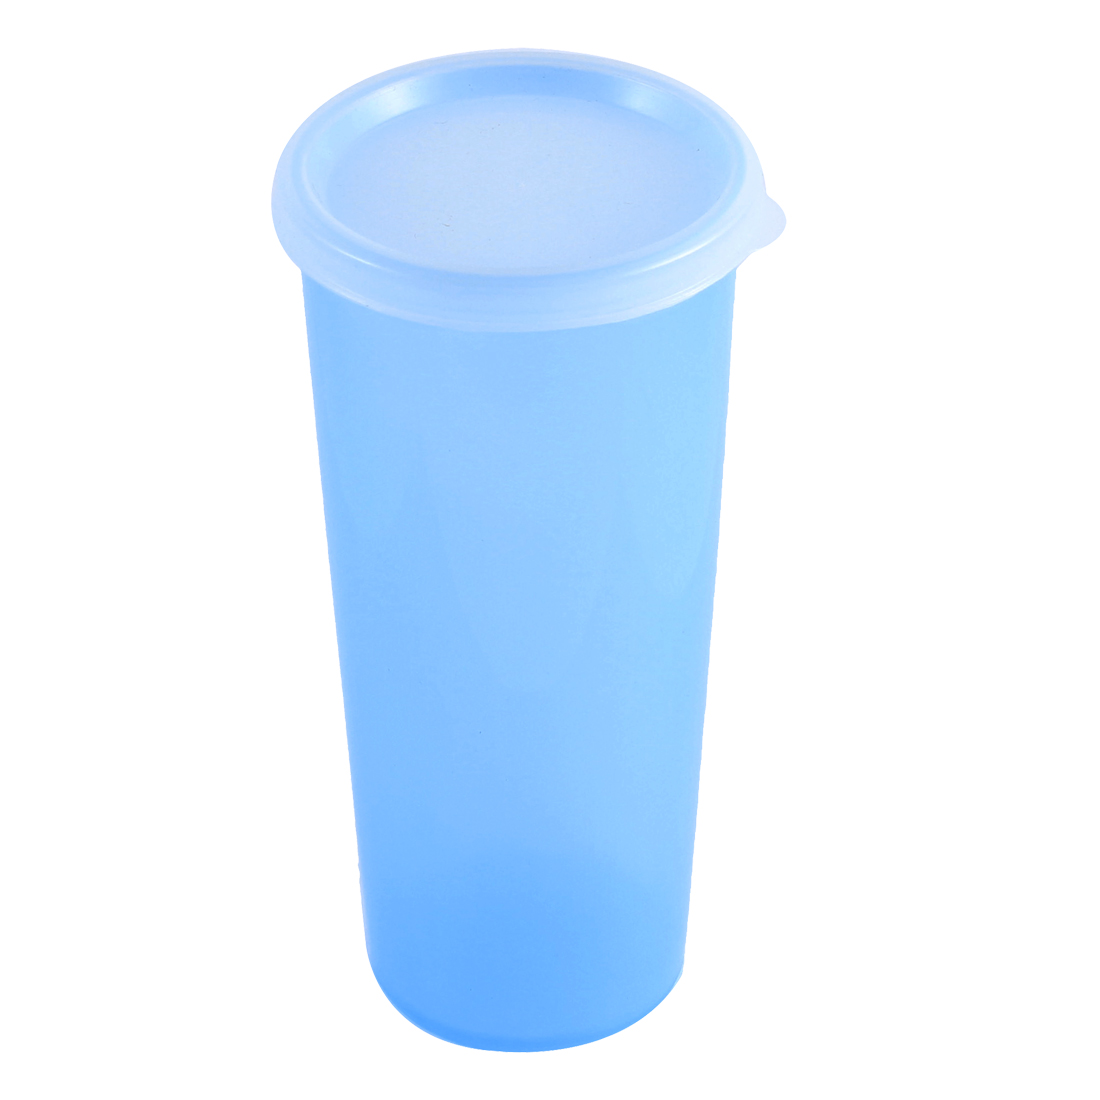 Home Office Fruit Juice Water Bottle Plastic Drink Cup Mug 470ml Clear Blue